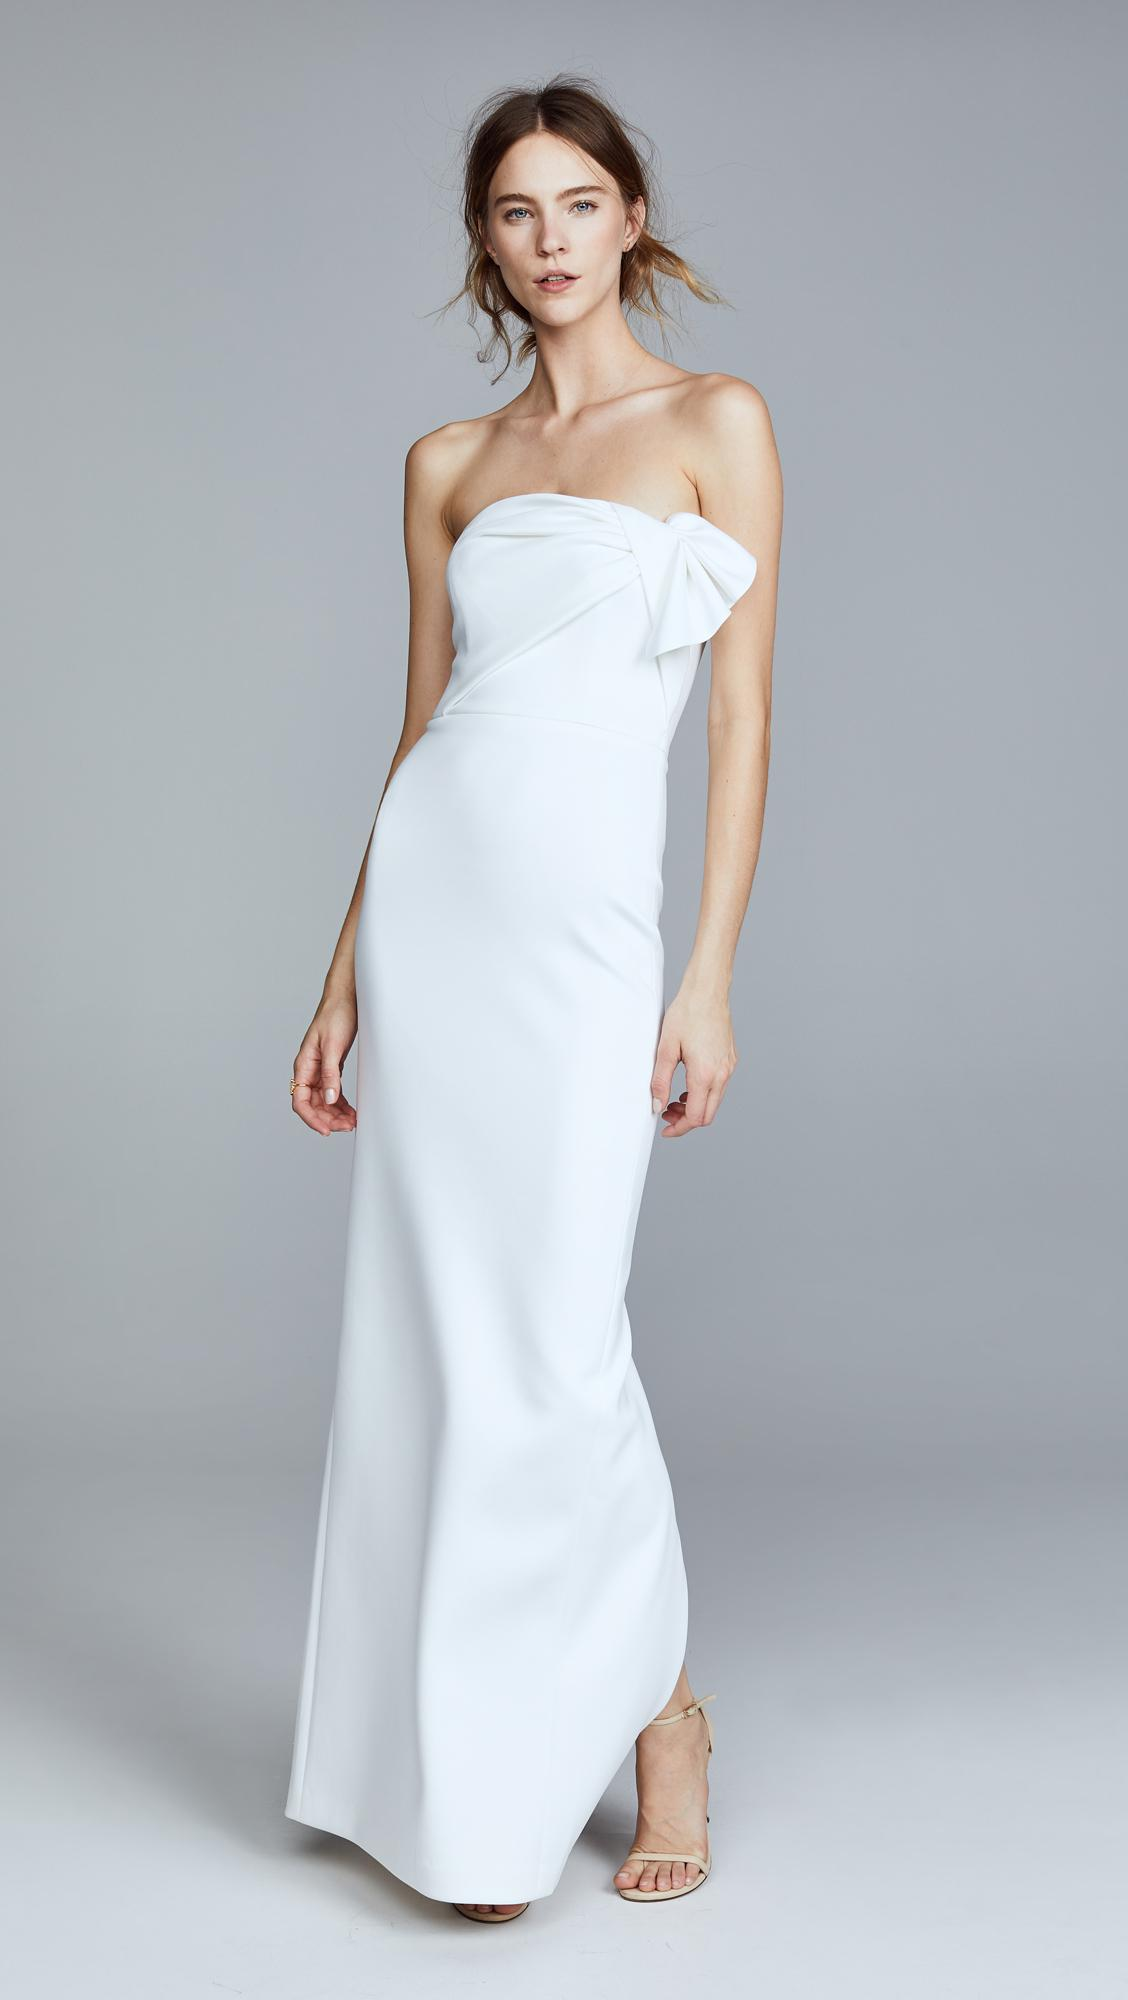 Lyst - Black Halo Divina Gown